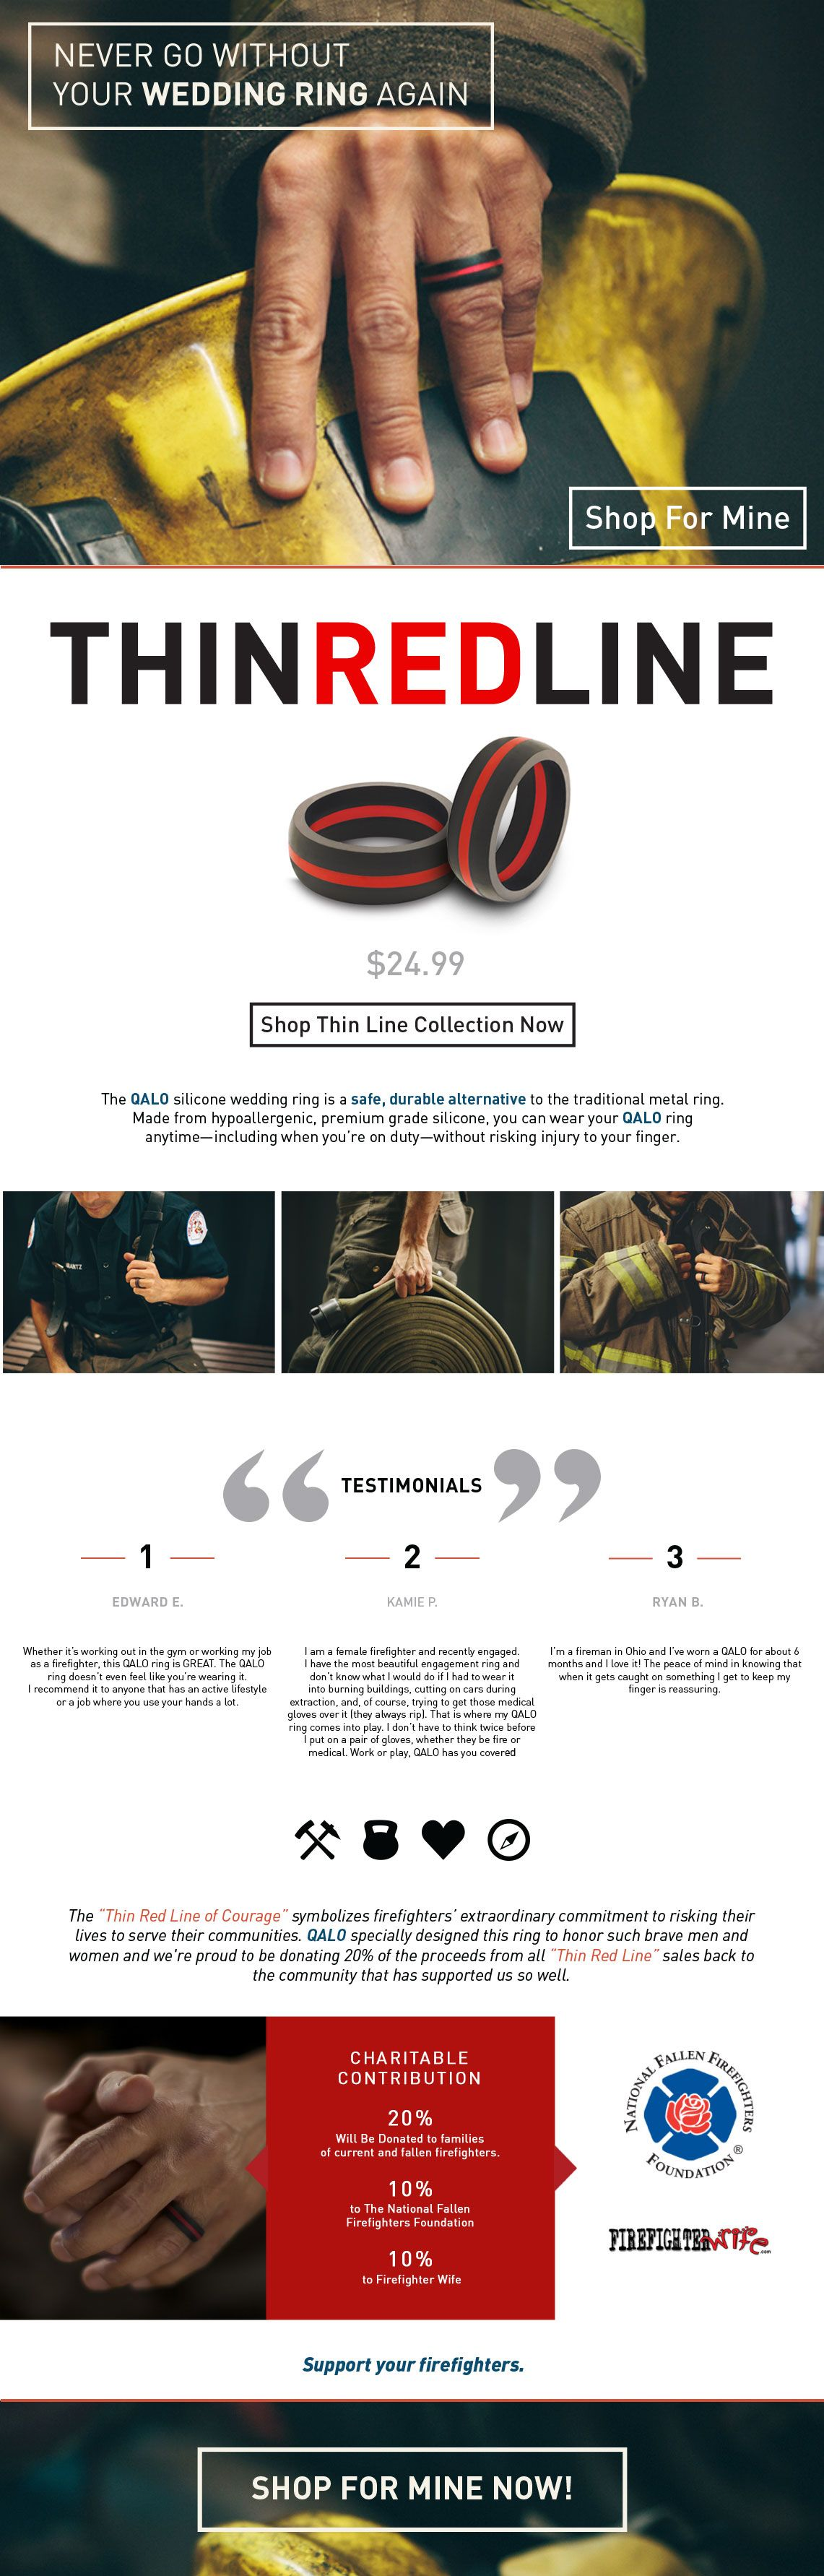 mens firefighter wedding bands Wedding band Ryan could actually wear at work and they donate the profits to the Natl Fallen Firefighters Foundation Thin Red Line Silicone Wedding Ring